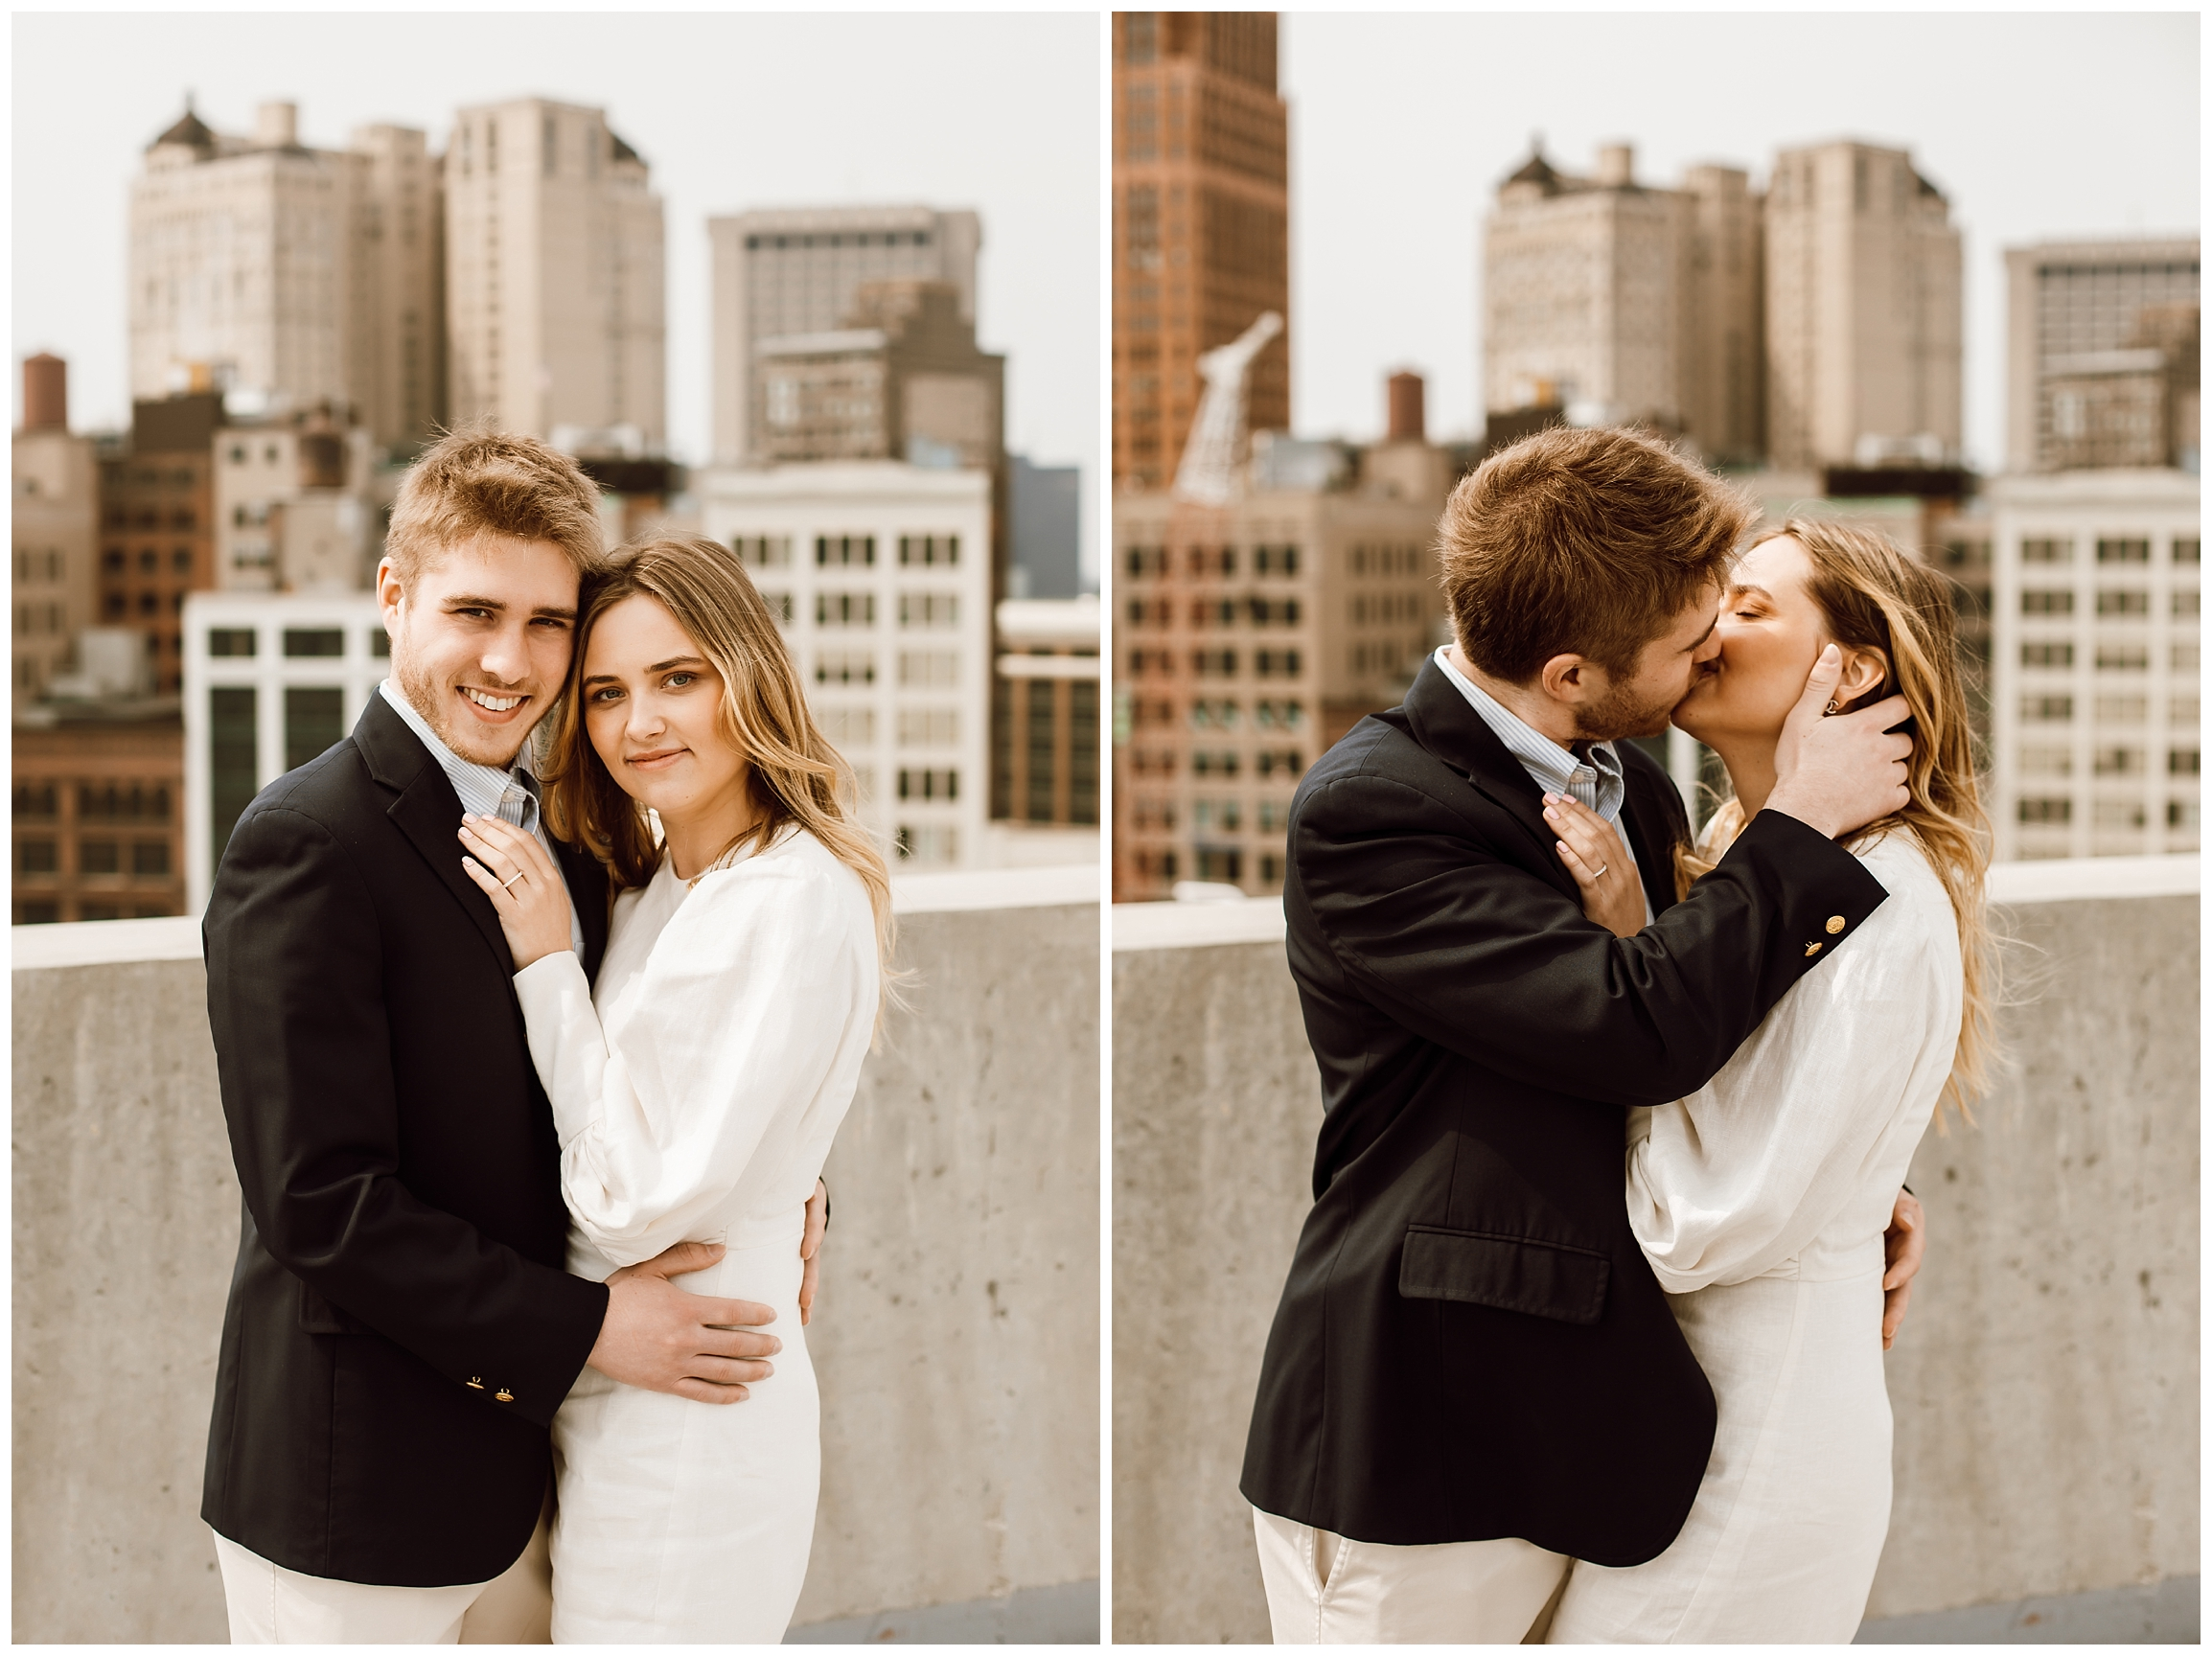 Katie_Vonasek_Detroit_Courthouse_Wedding_Photography31.jpg